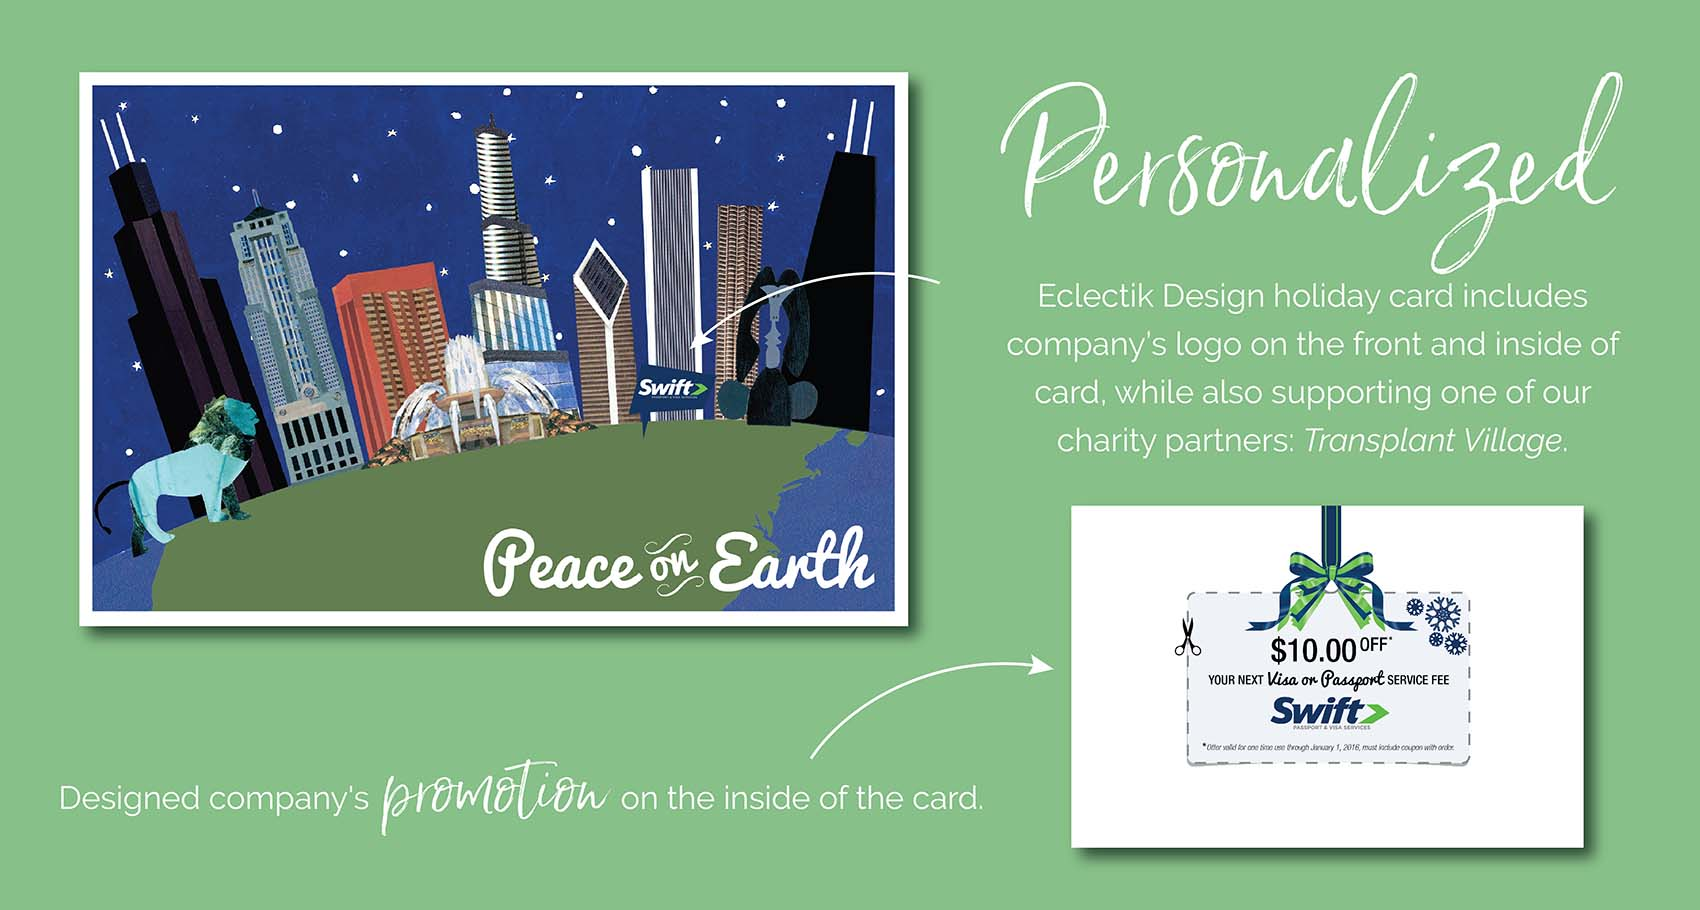 Peace on Earth Personalized Holiday Card Design